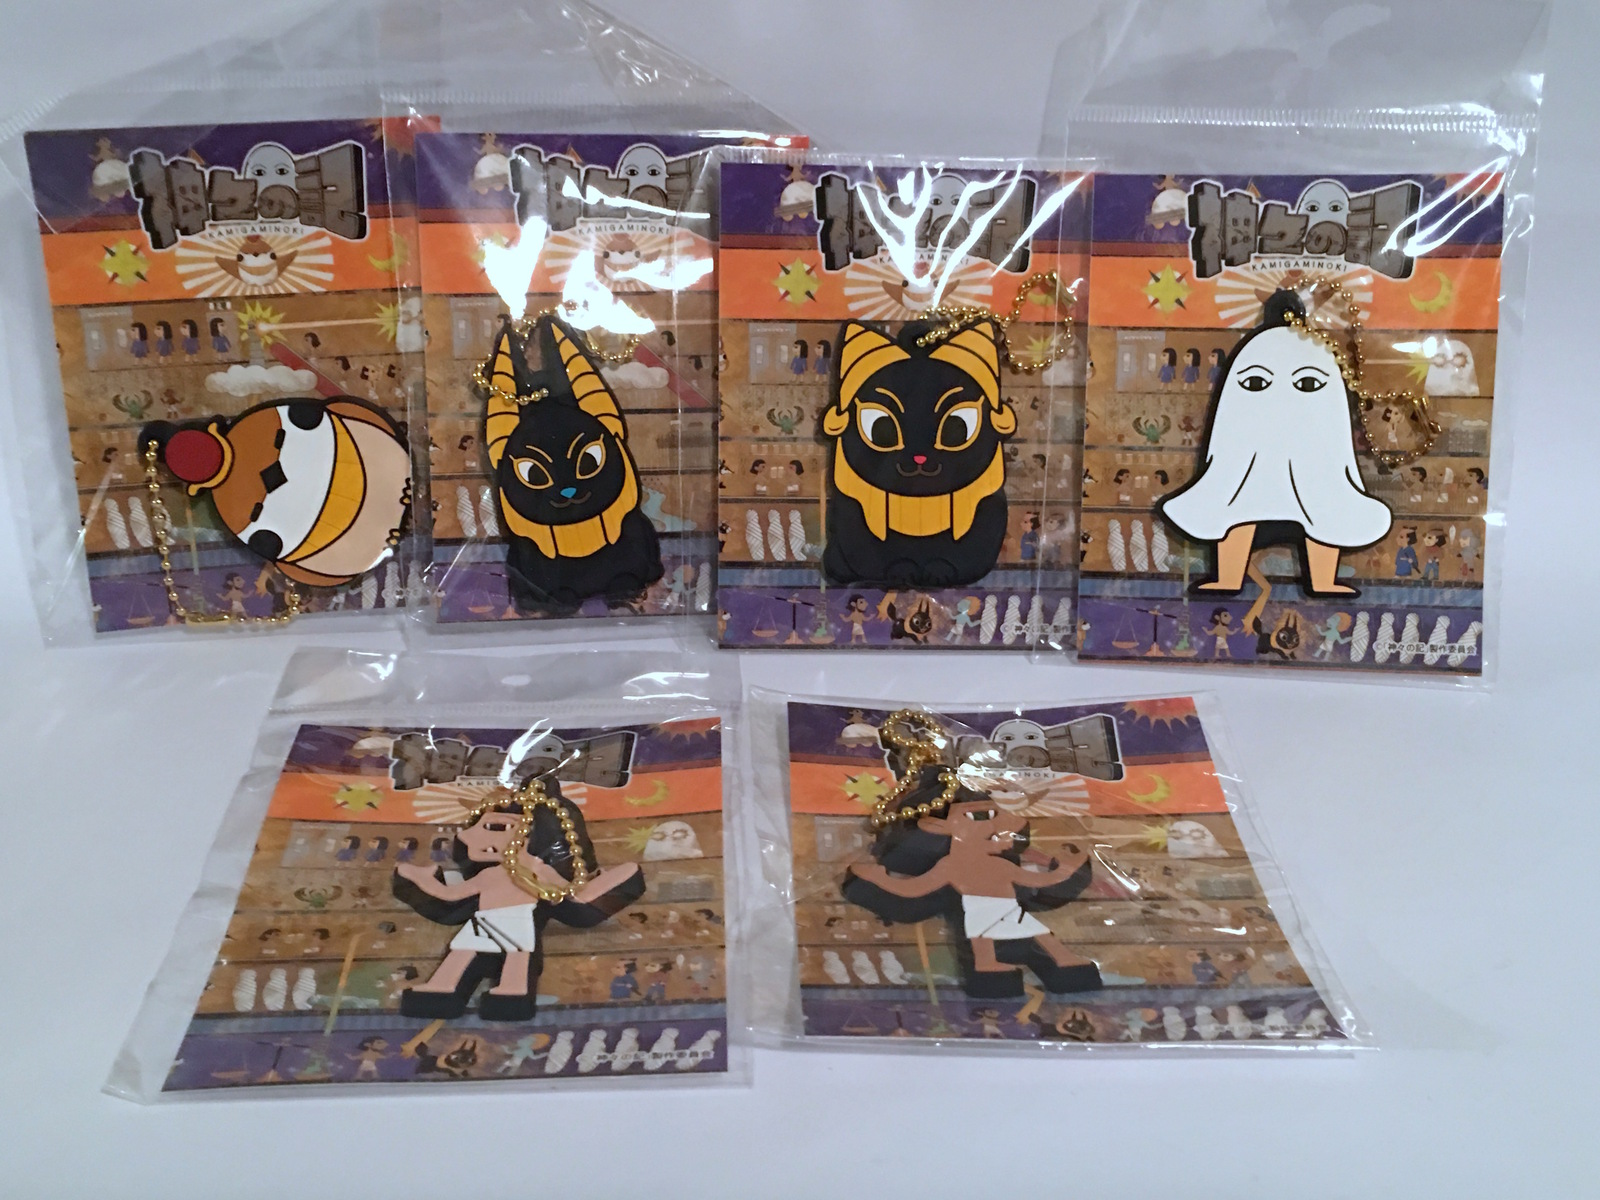 Konatsu Egyptian Exhibition - Complete Set of Rubber Keychains